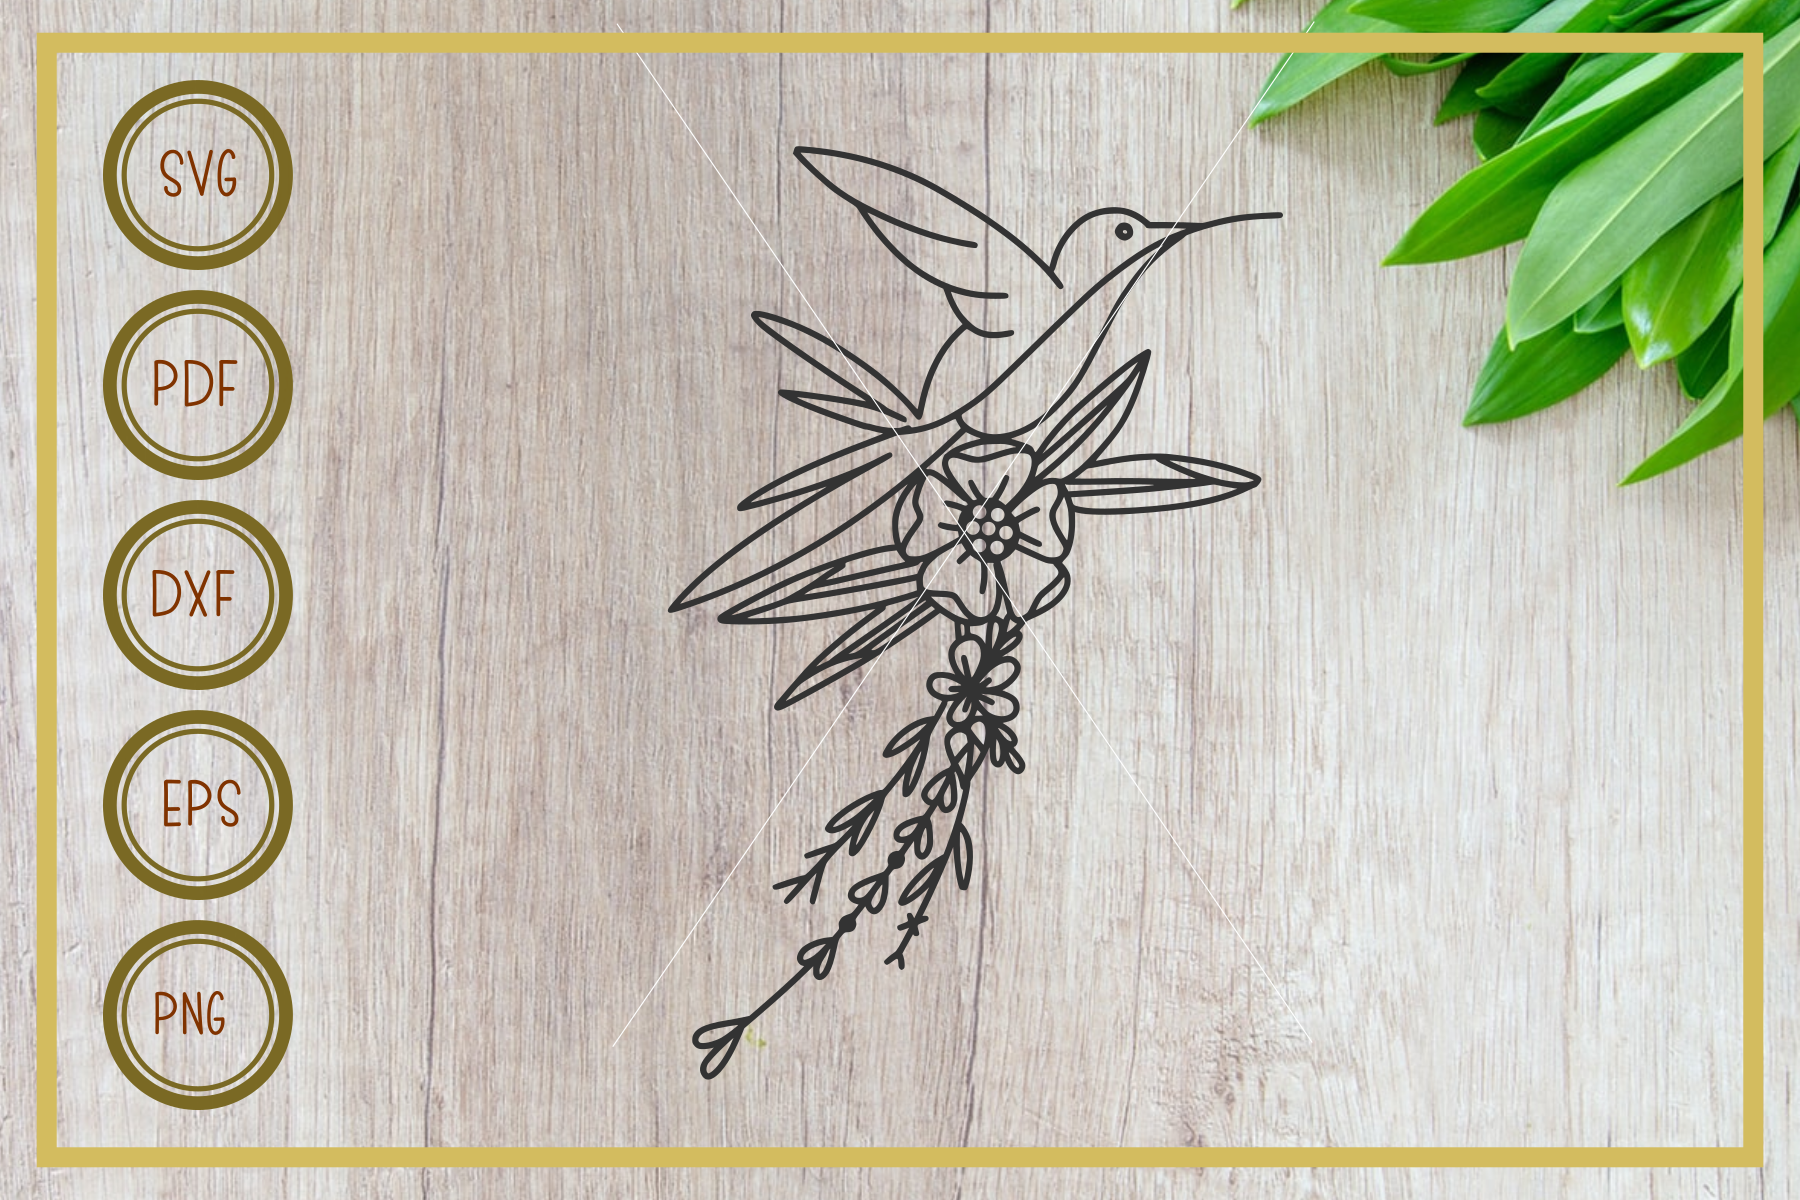 Humming bird svg, birds fly, instant download, cut file example image 1